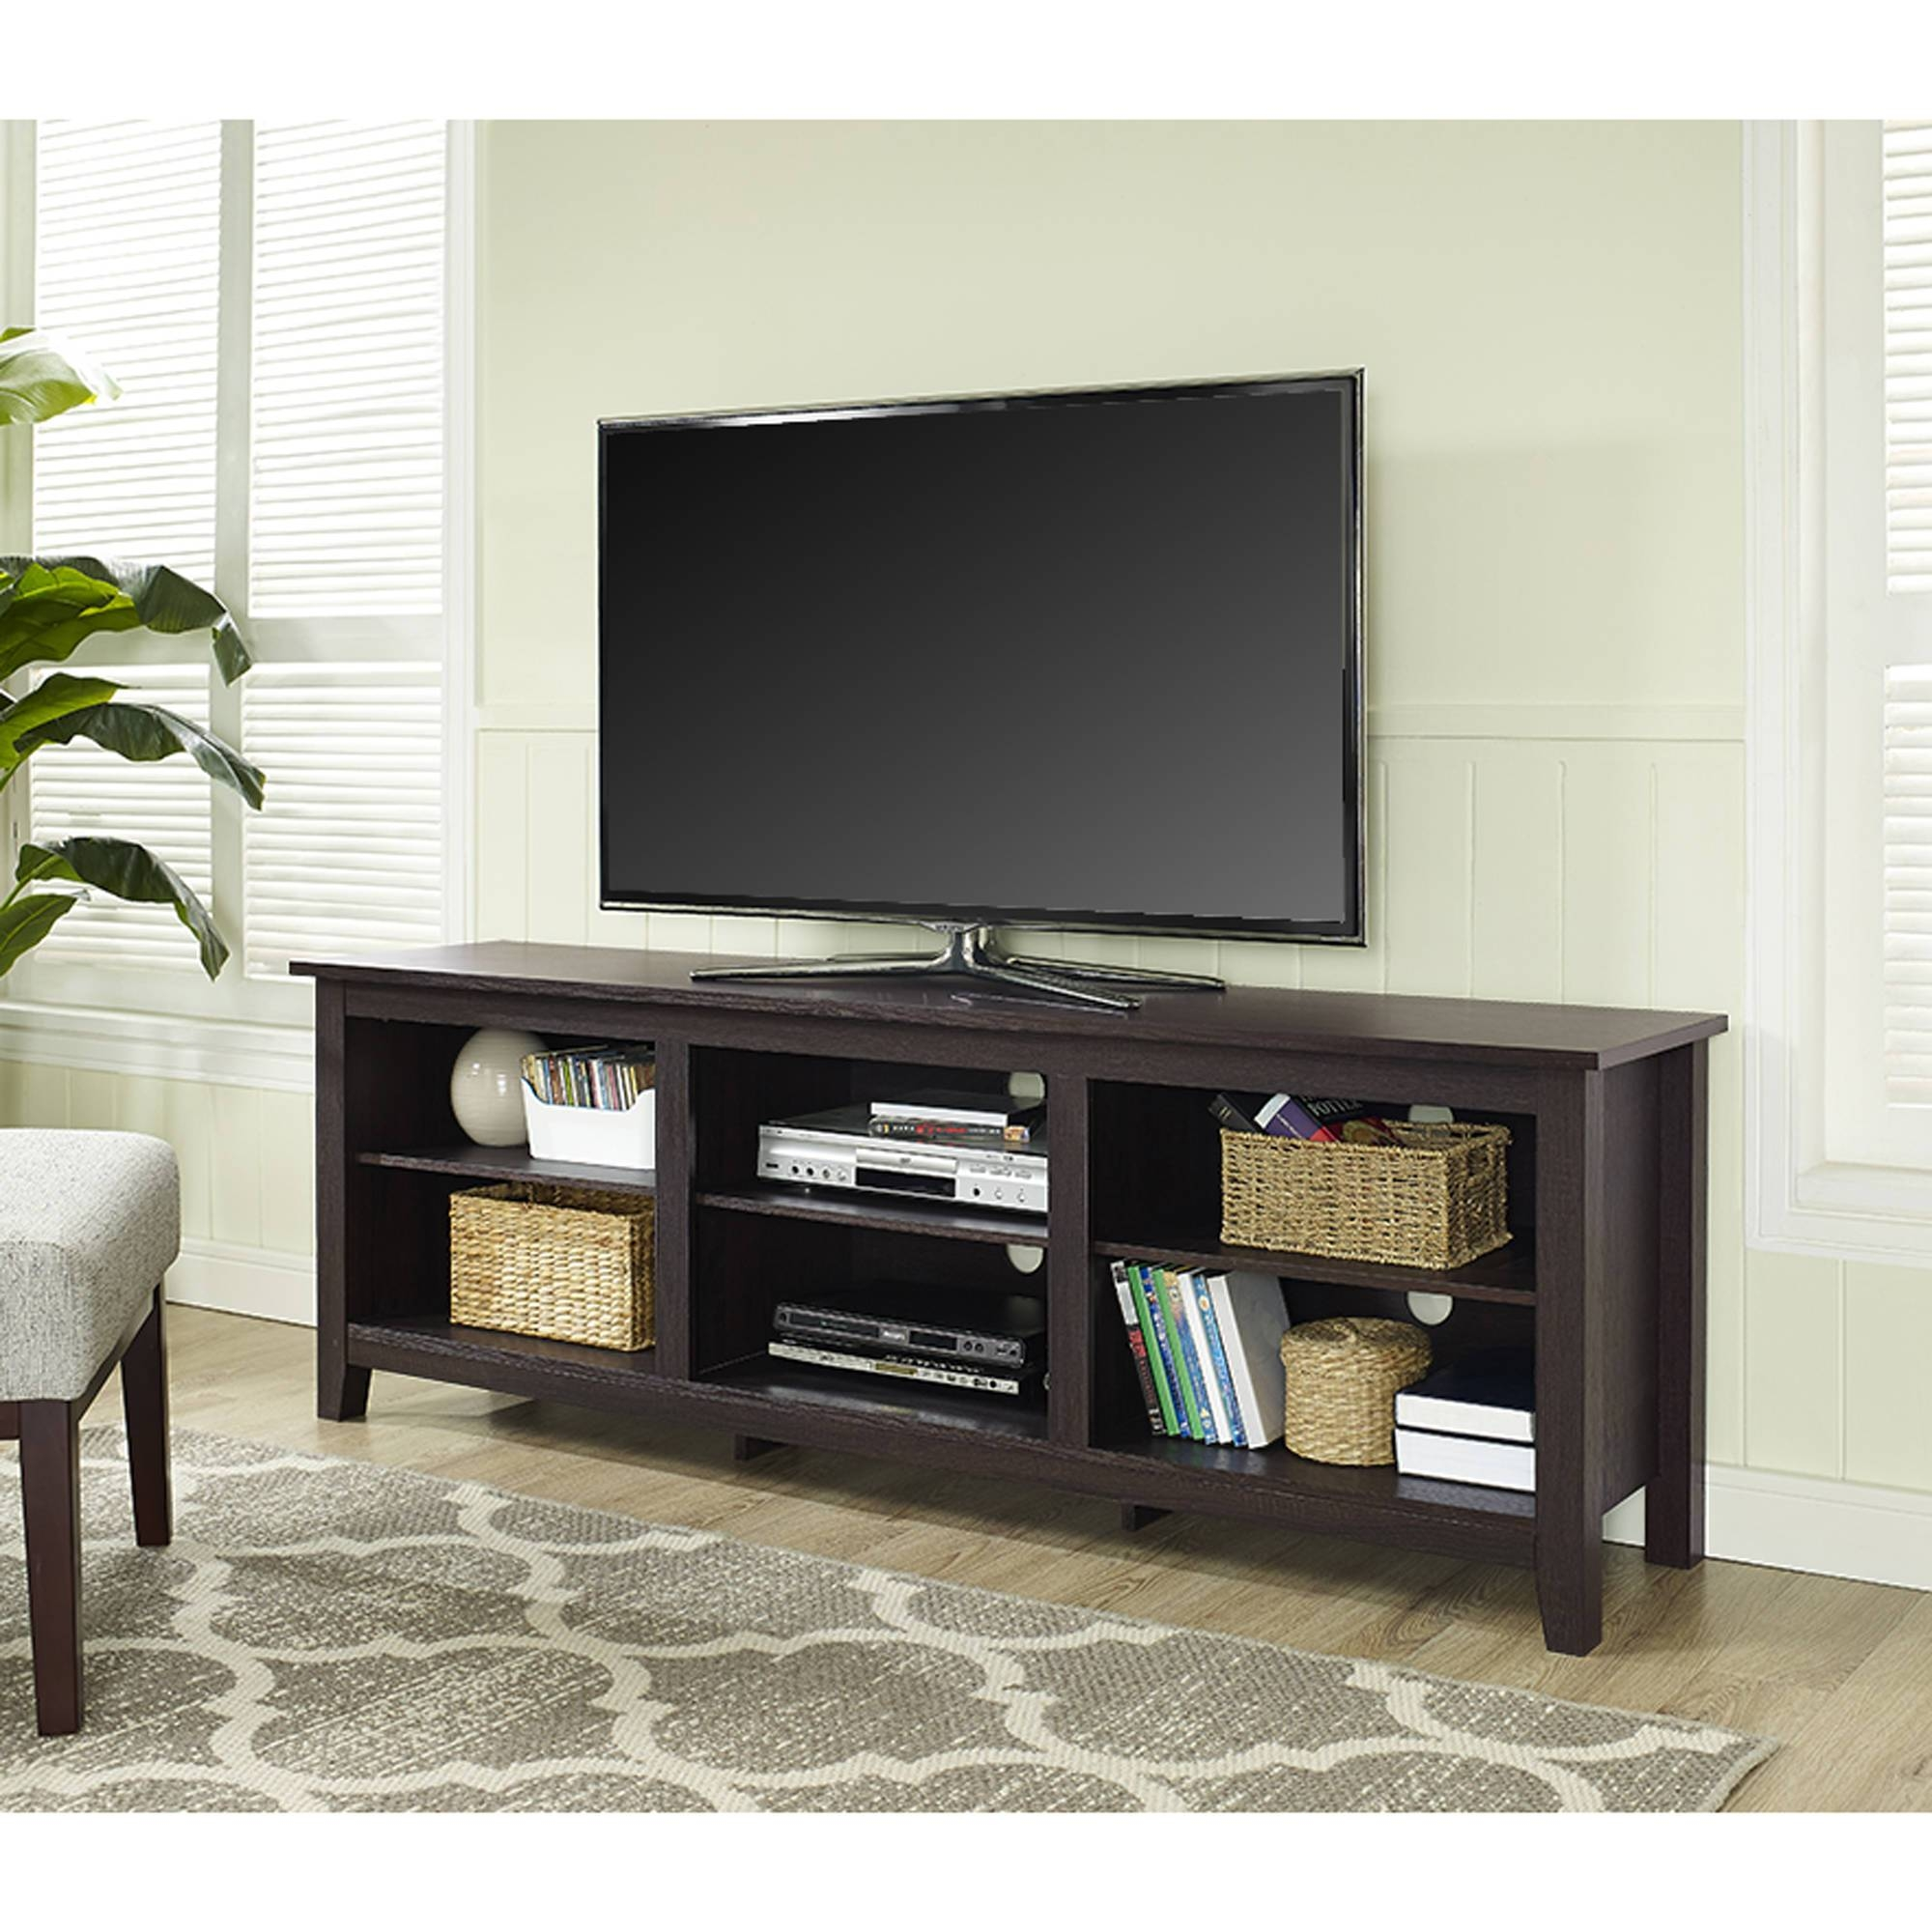 "Altra Bailey 72"" Espresso Tv Stand For Tv's Up To 72"" - Walmart for Expresso Tv Stands (Image 3 of 15)"